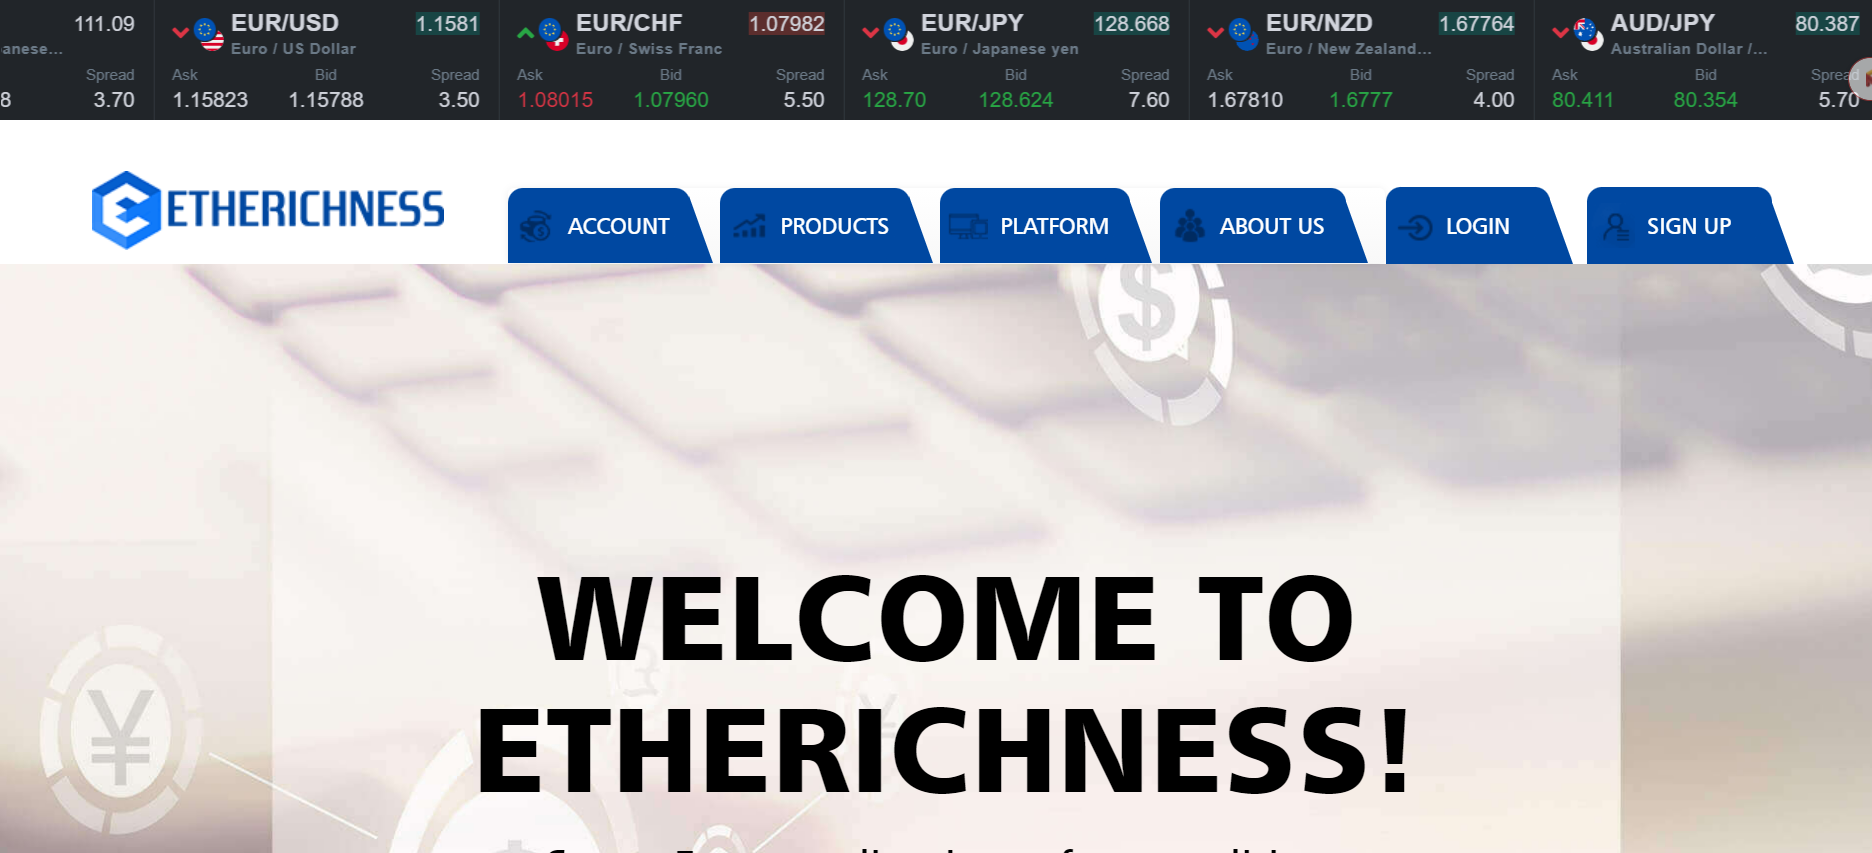 EtheRichness – Are They a Scam?